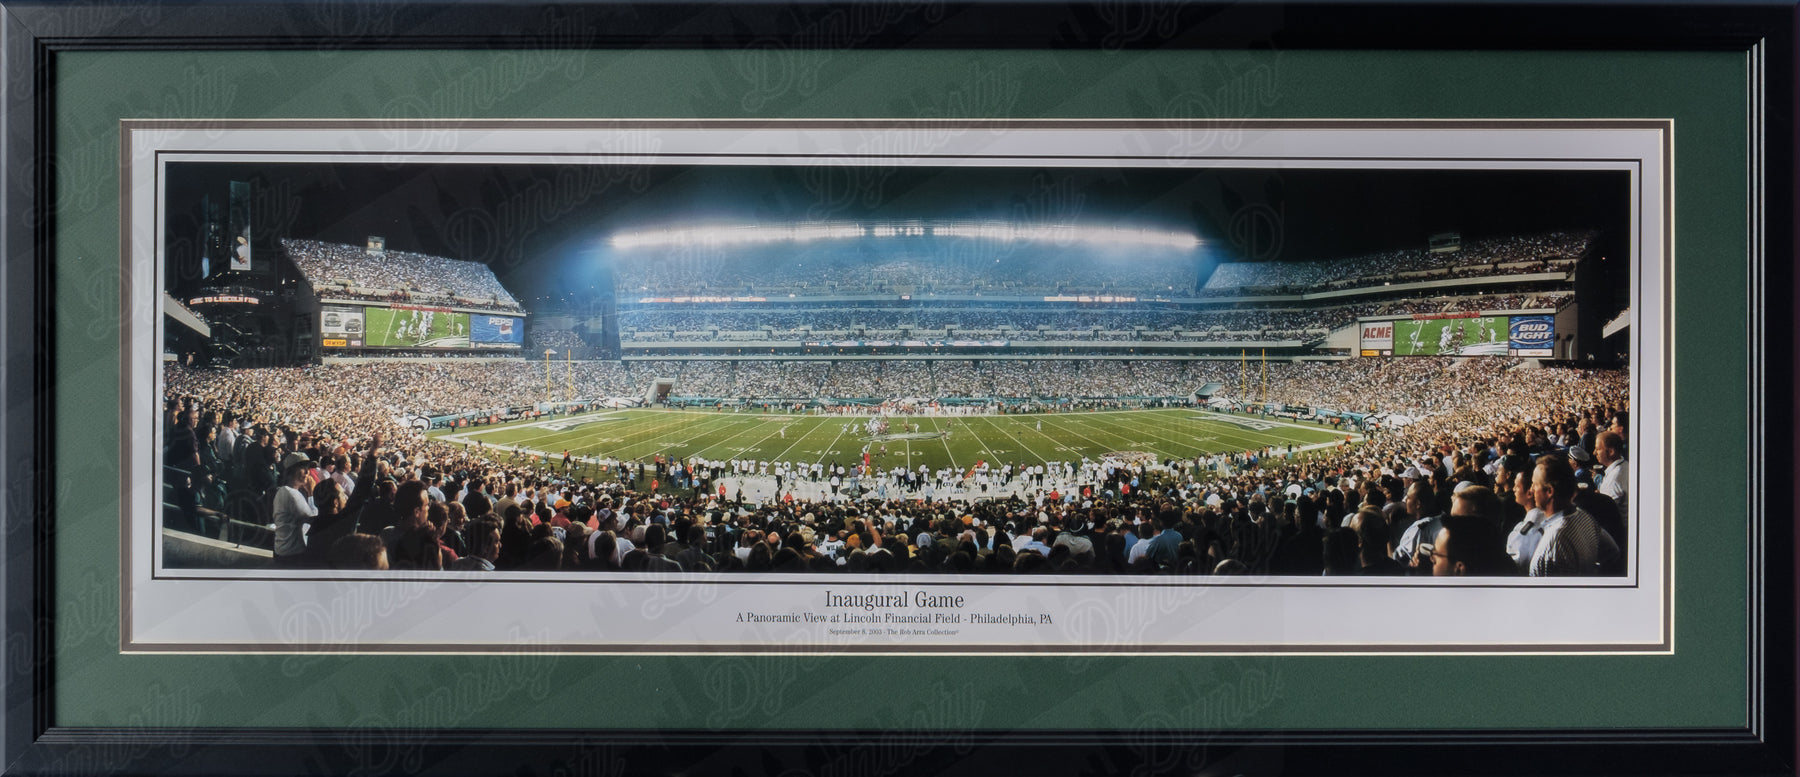 reputable site 7f4b6 6fb78 Philadelphia Eagles Lincoln Financial Field Inaugural Game NFL Football Rob  Arra Framed and Matted Stadium Panorama